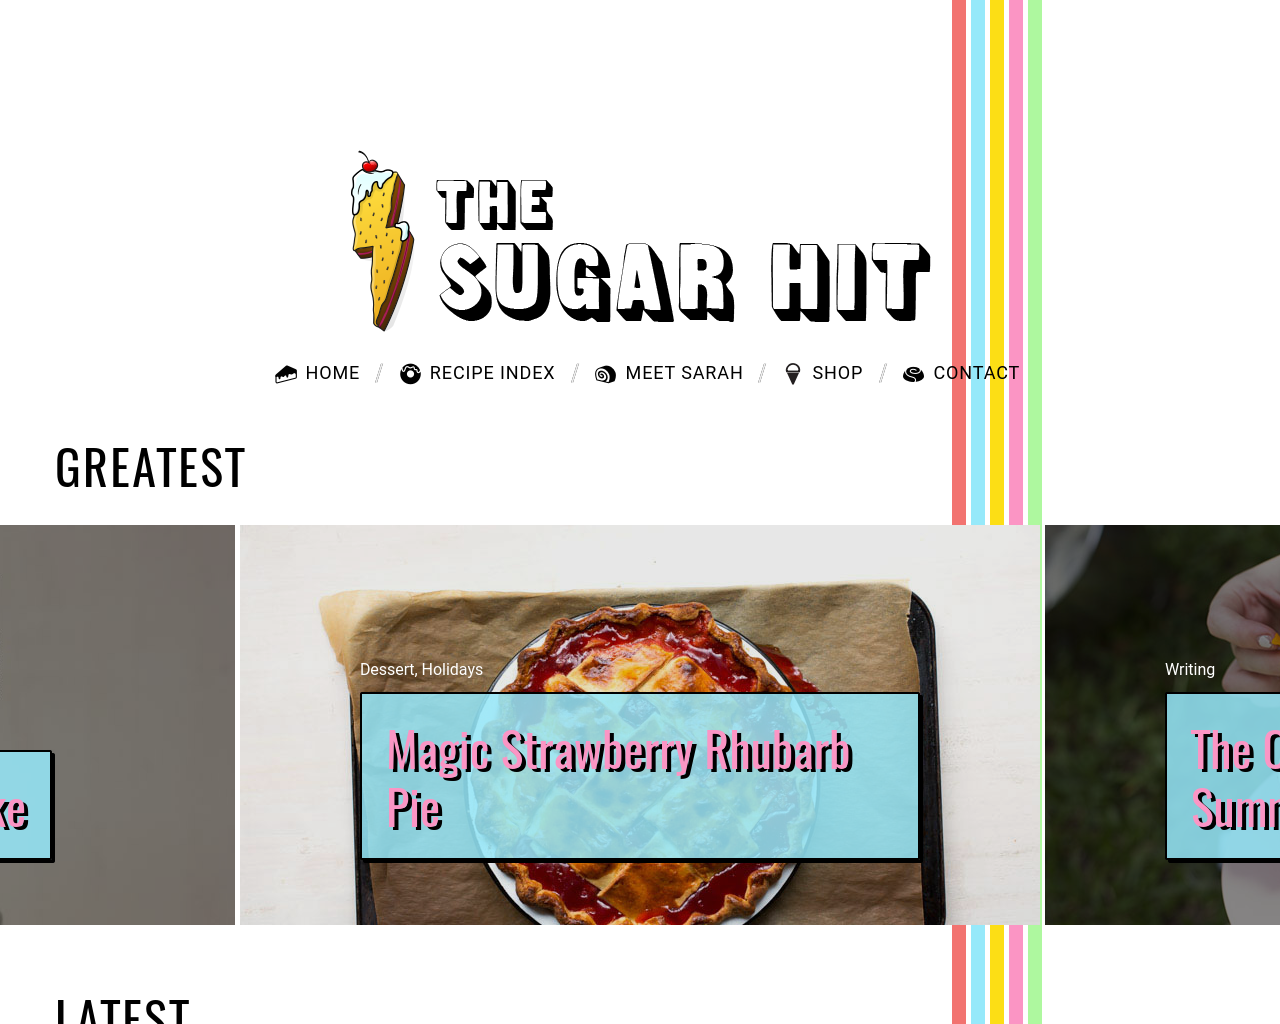 The-Sugar-Hit-Advertising-Reviews-Pricing